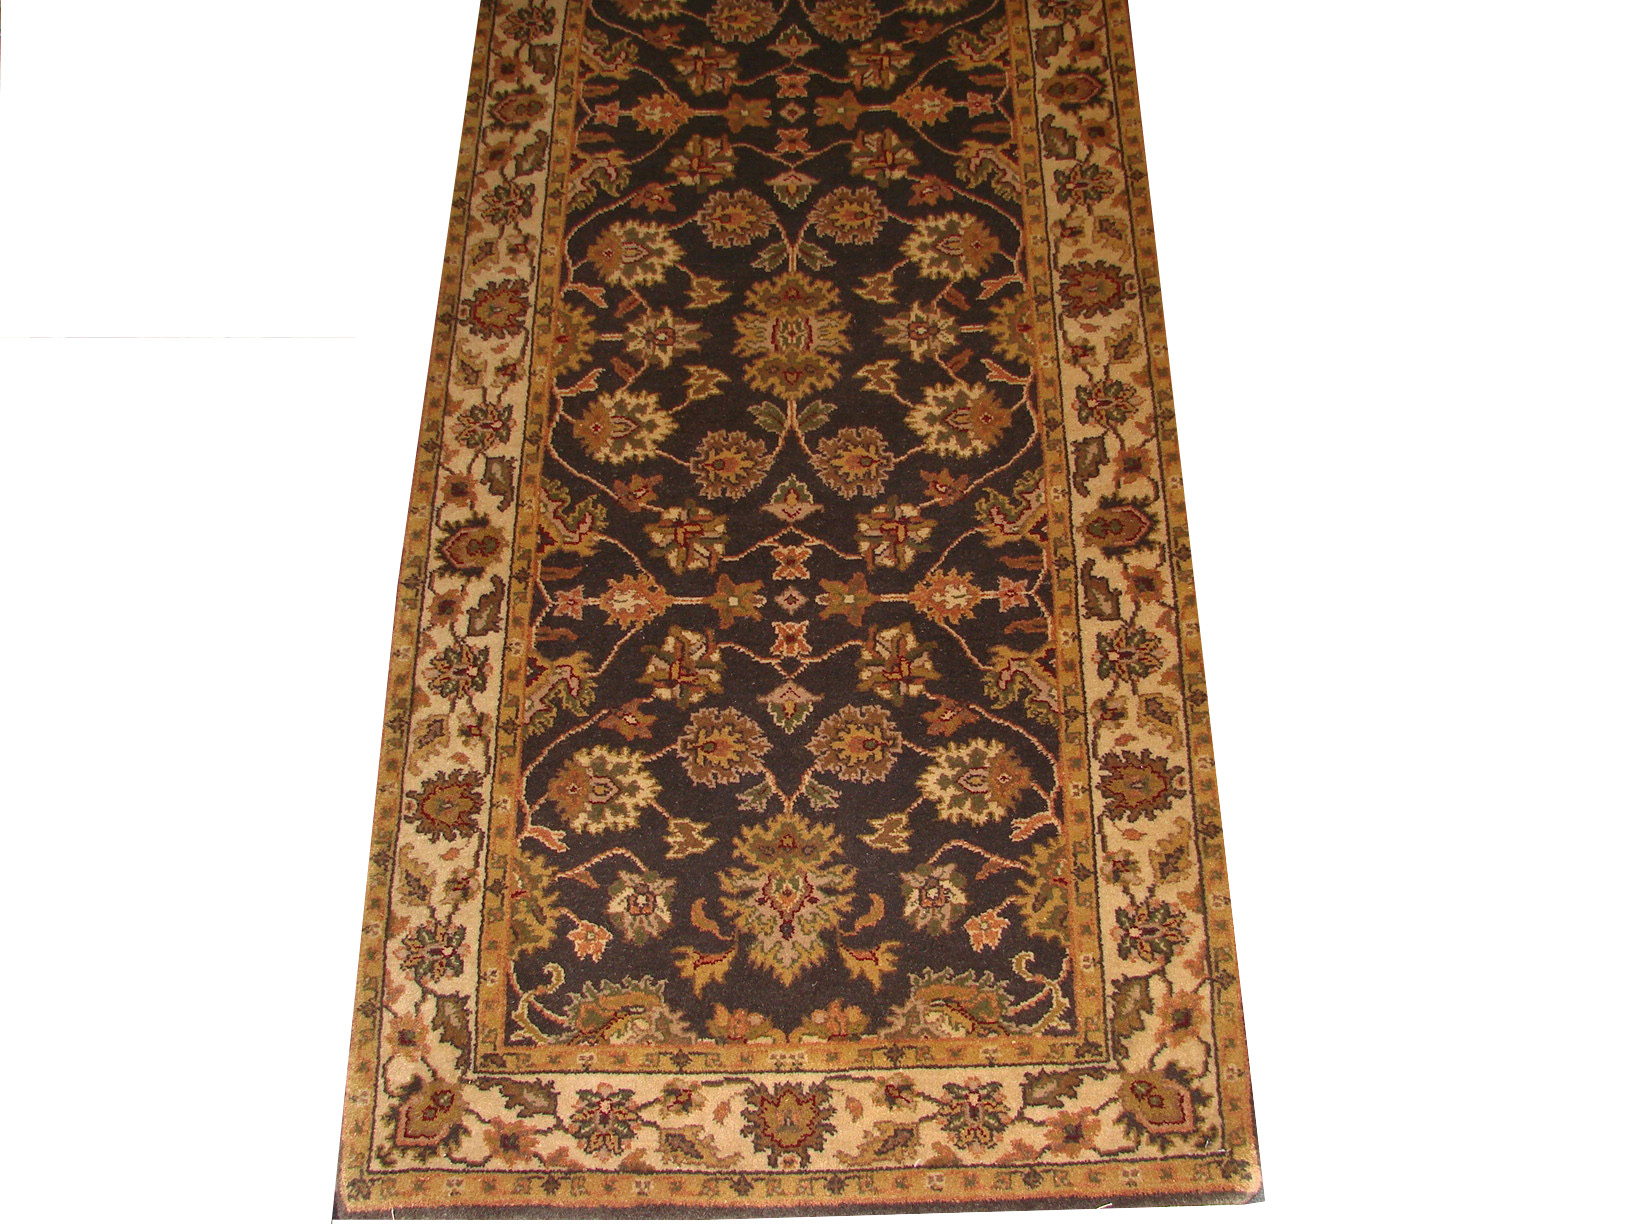 10 ft. Runner Traditional Hand Knotted Wool Area Rug - MR1066